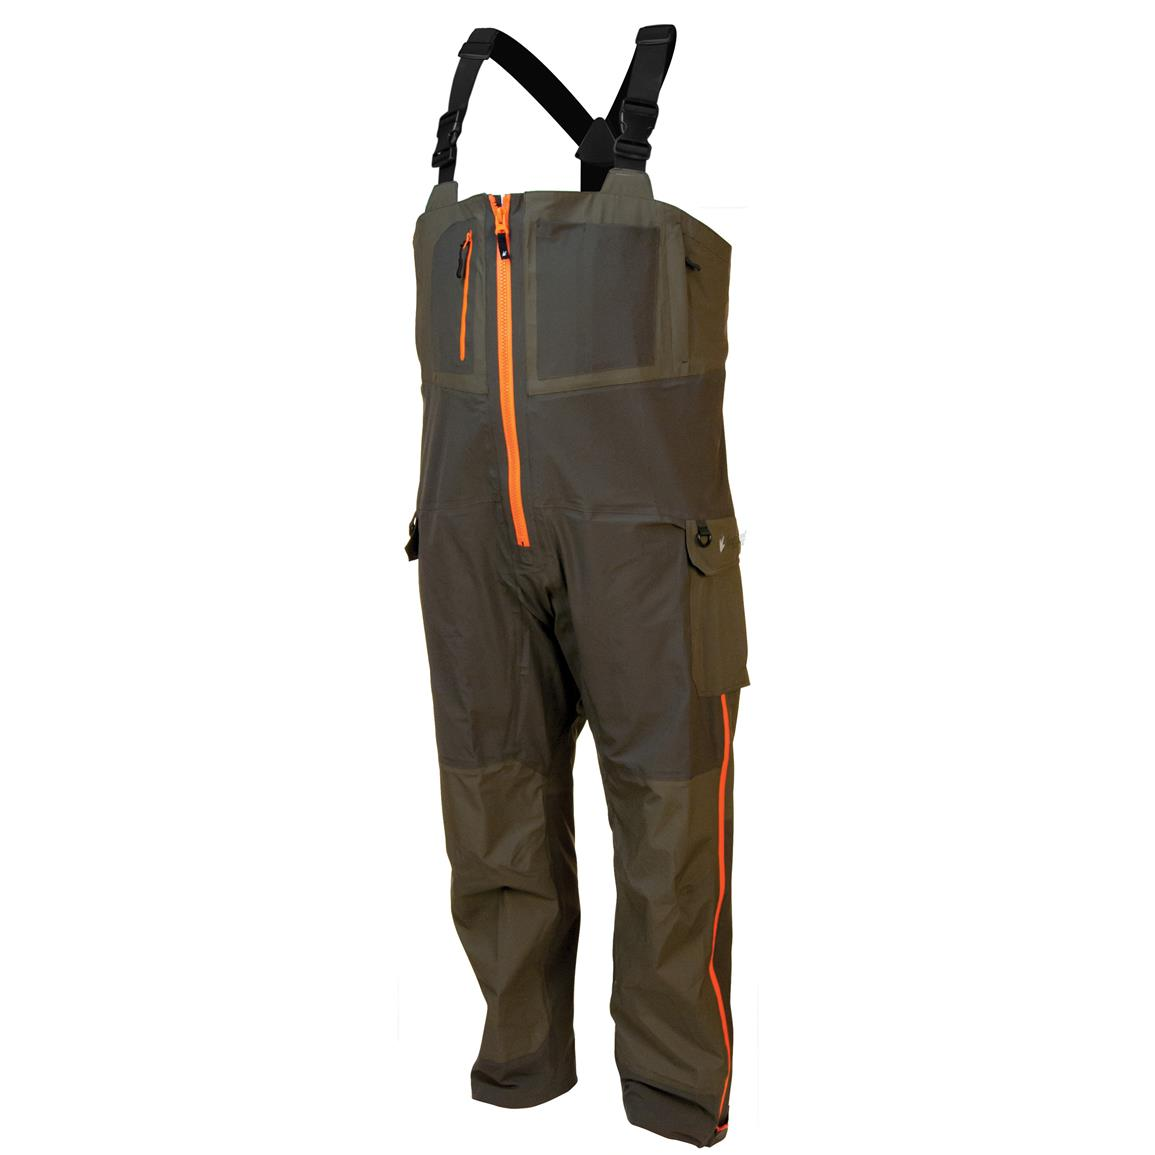 frogg toggs Pilot Guide Bibs, Stone / Taupe